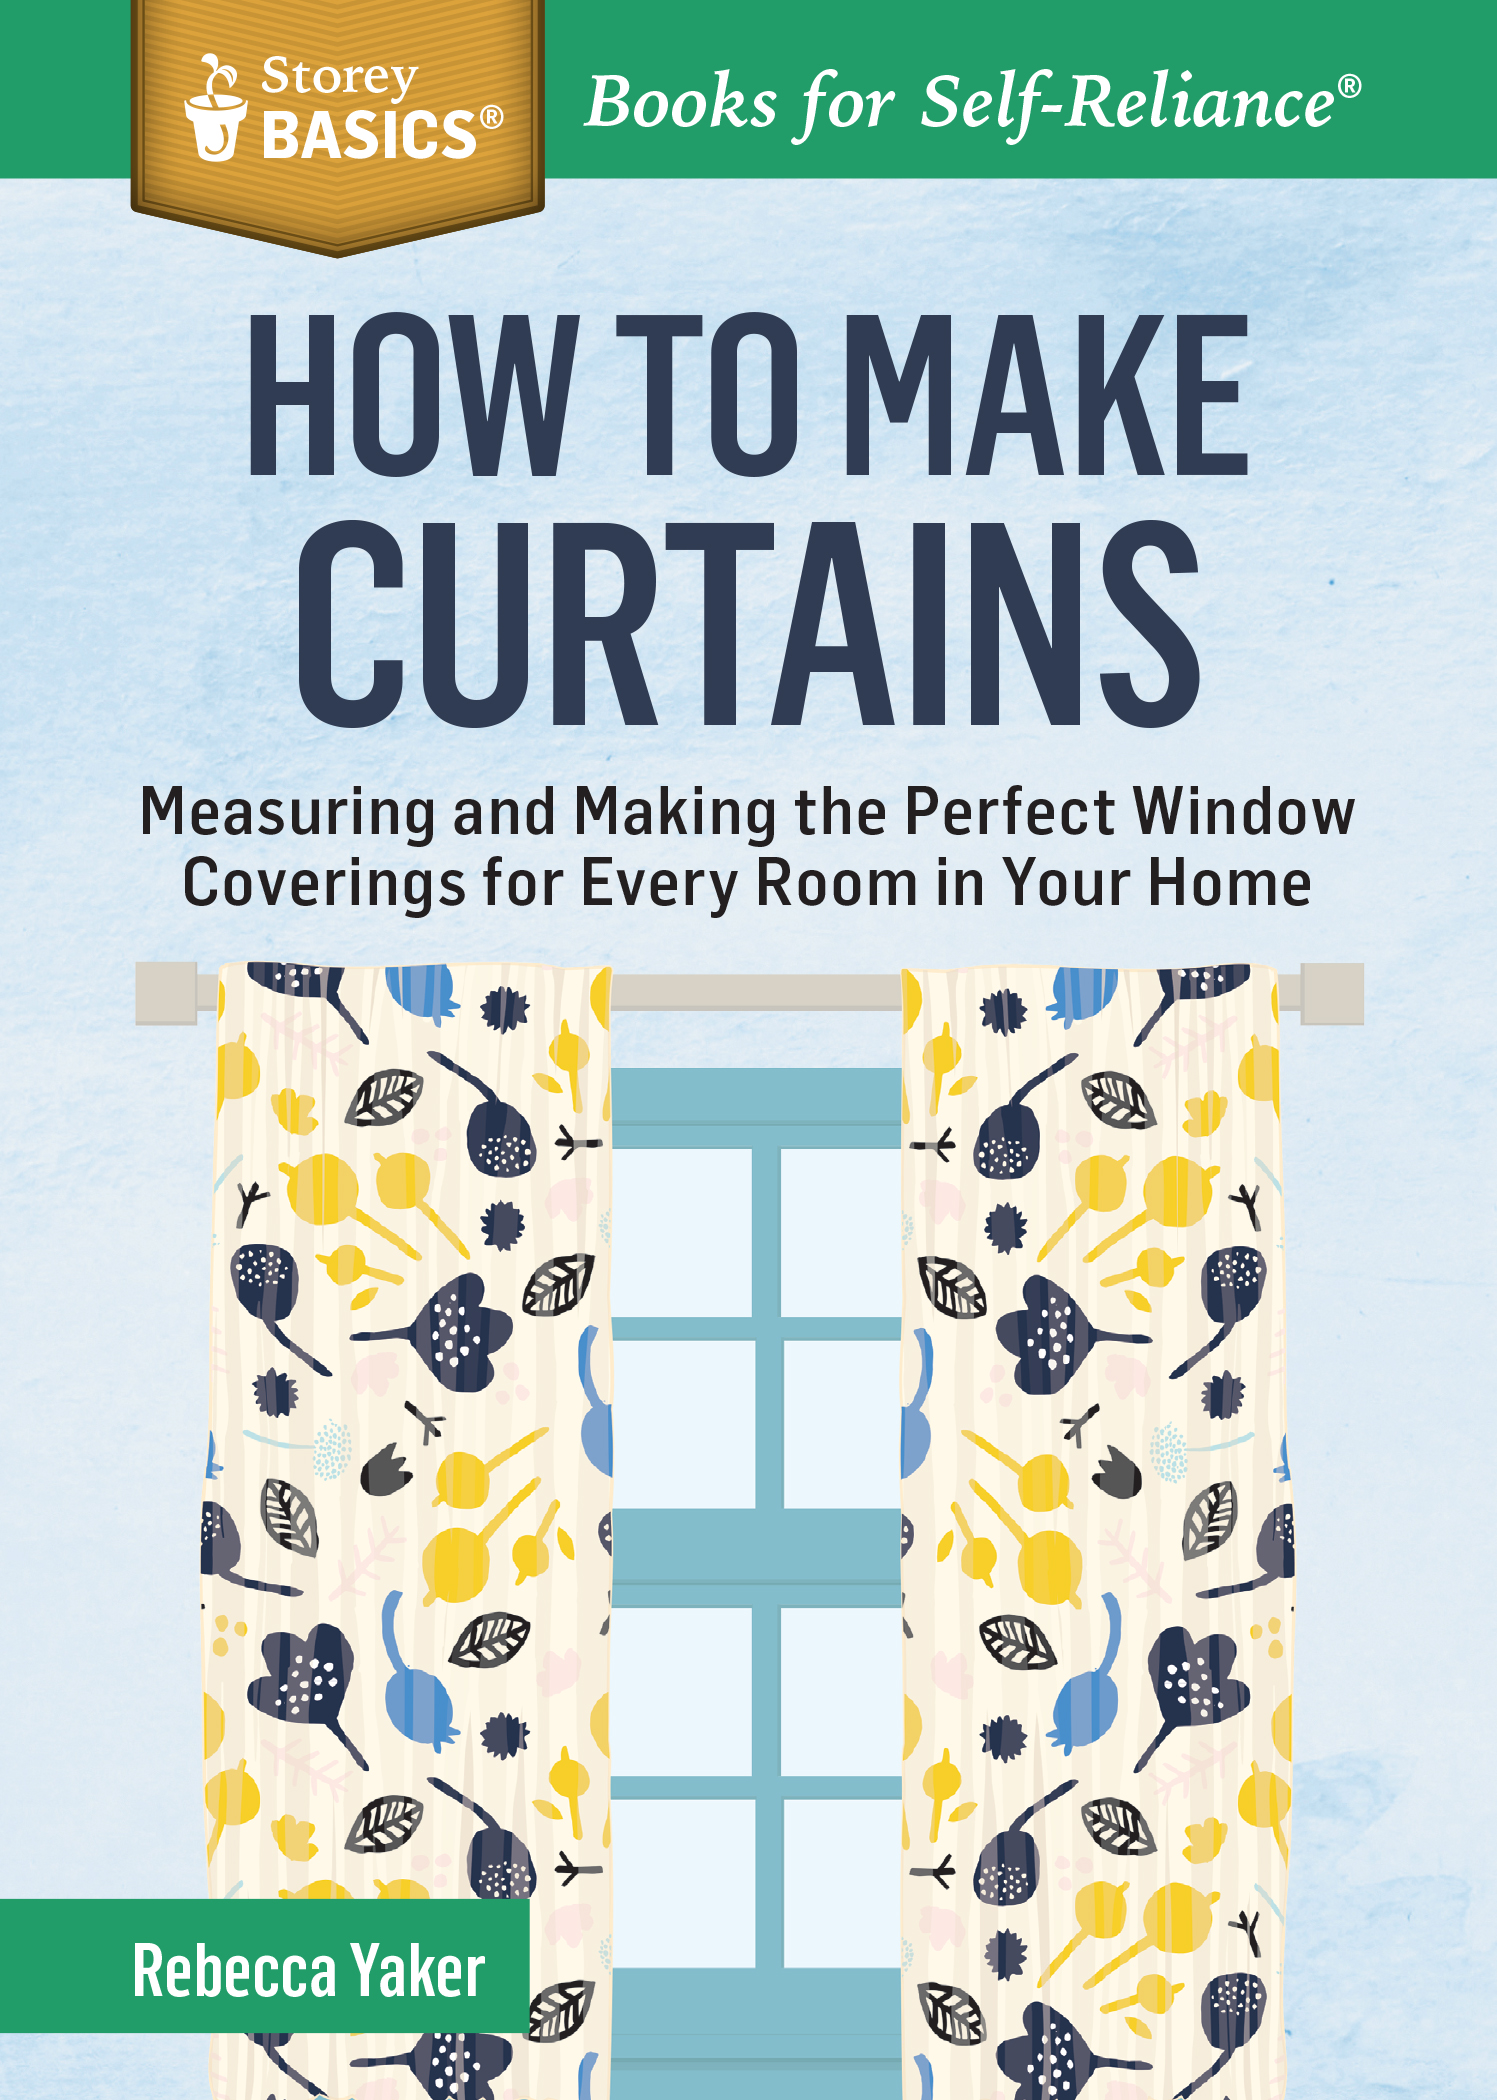 How to Make Curtains Measuring and Making the Perfect Window Coverings for Every Room in Your Home. A Storey BASICS® Title - Rebecca Yaker